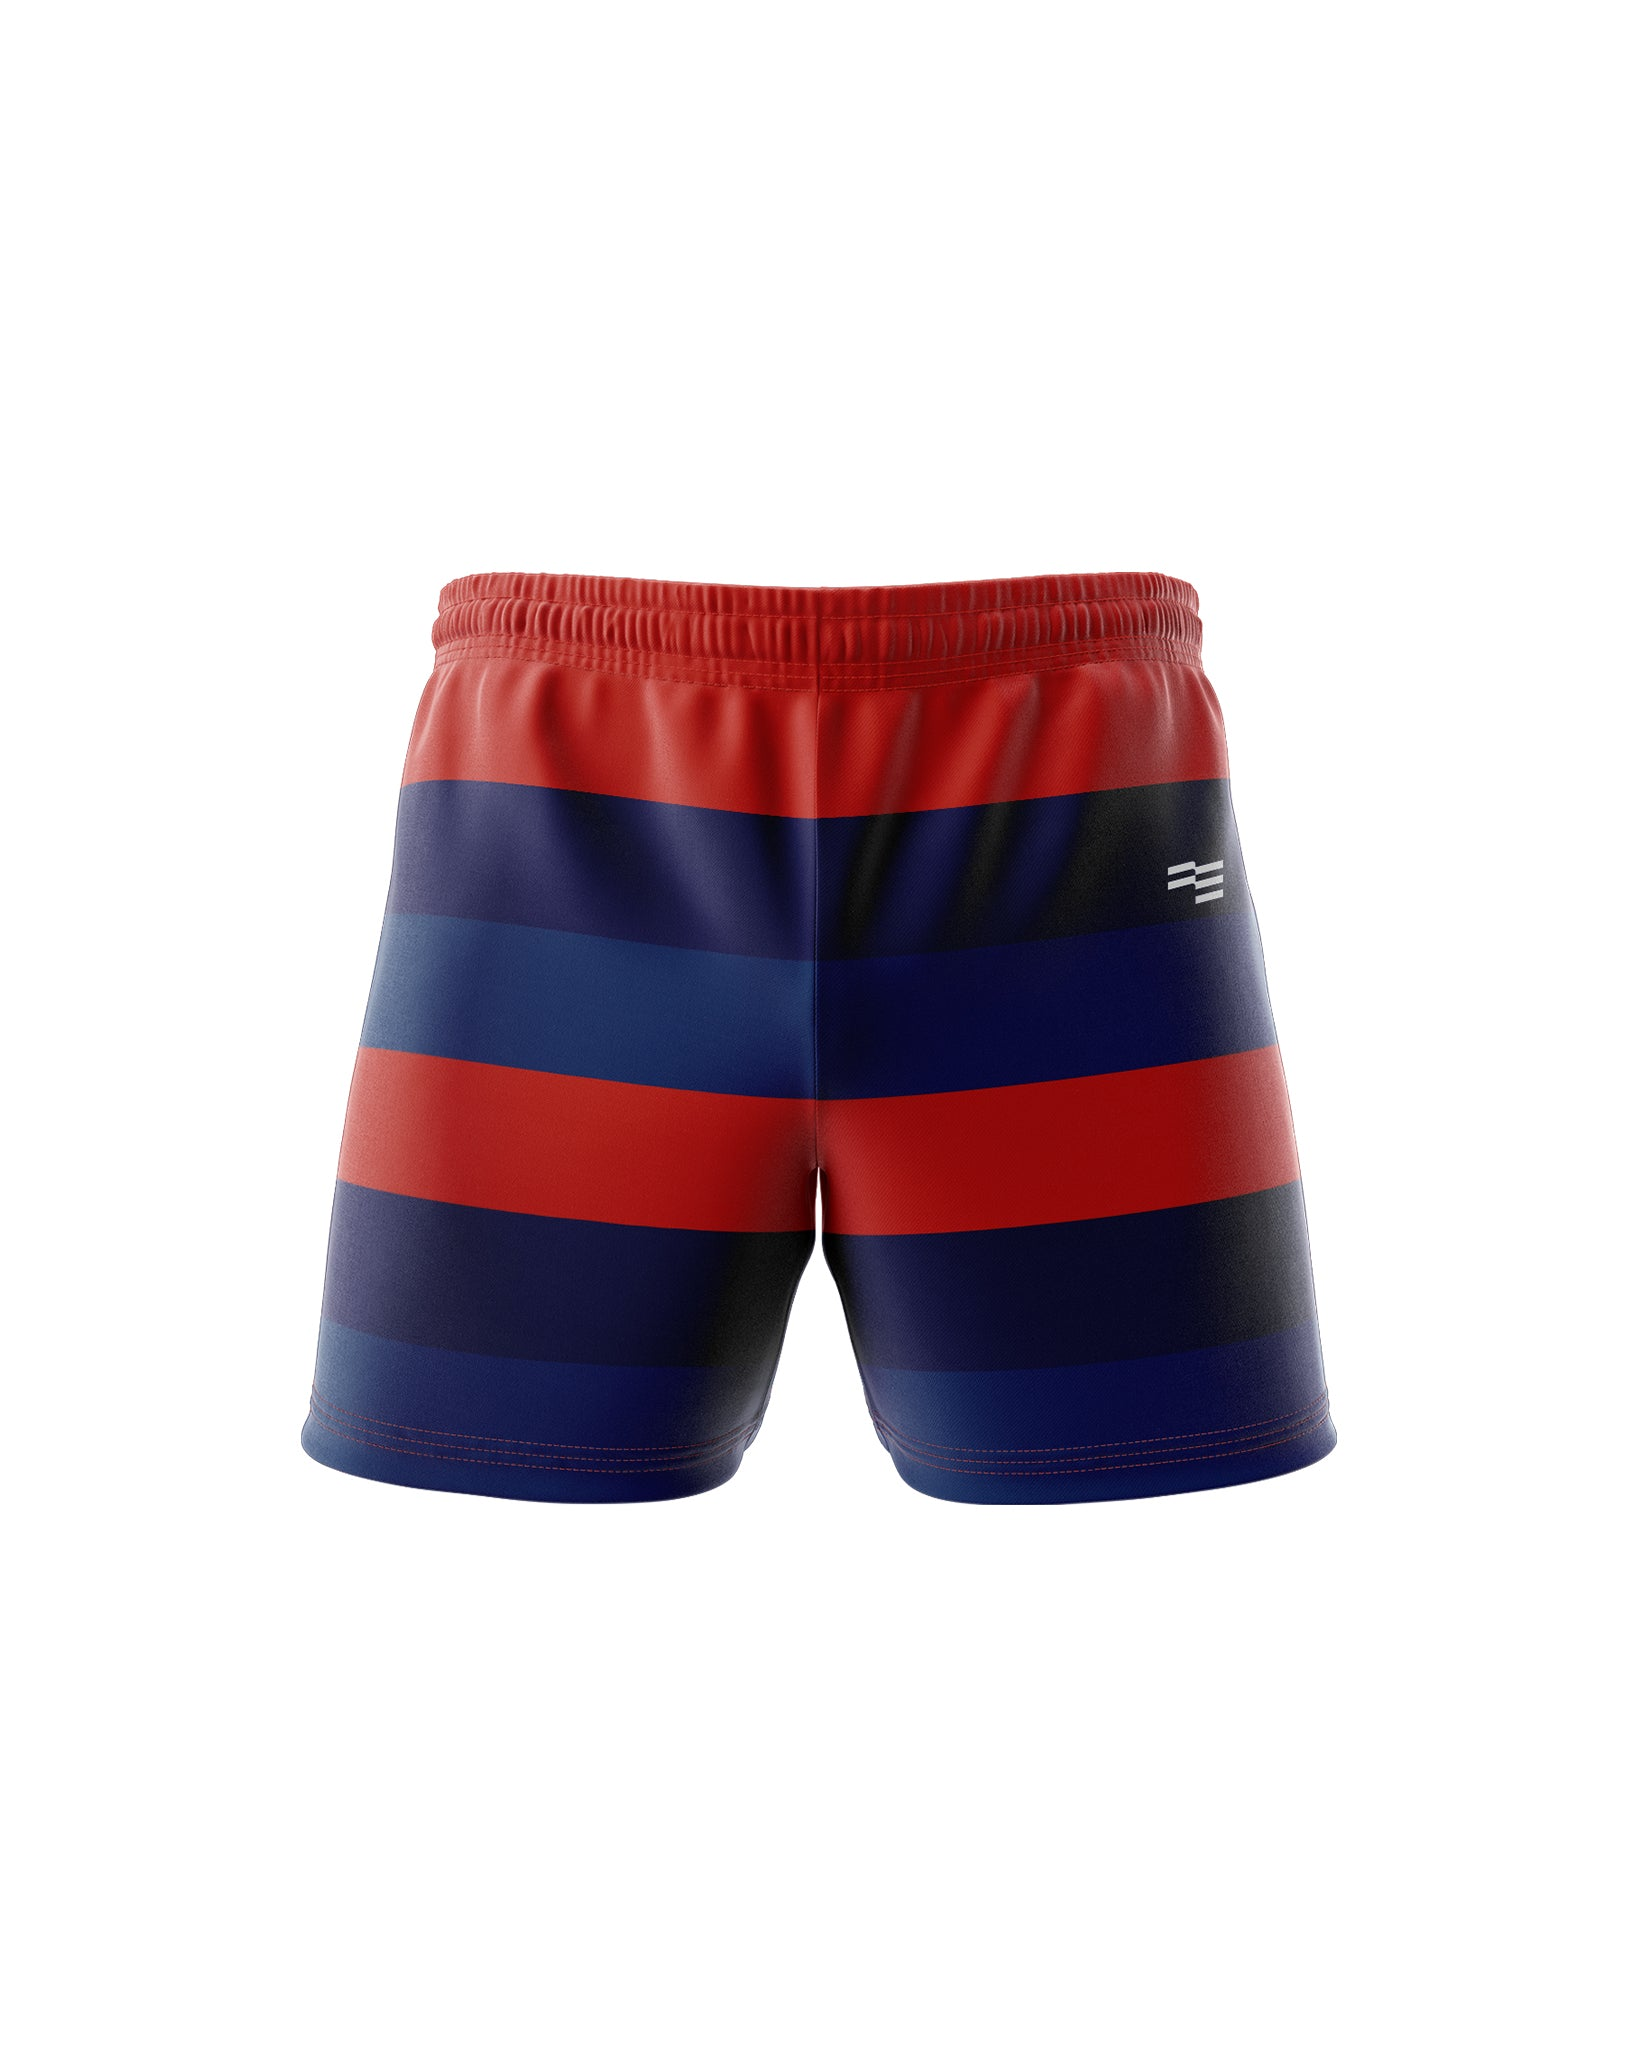 Ravens Rugby Shorts - Mens